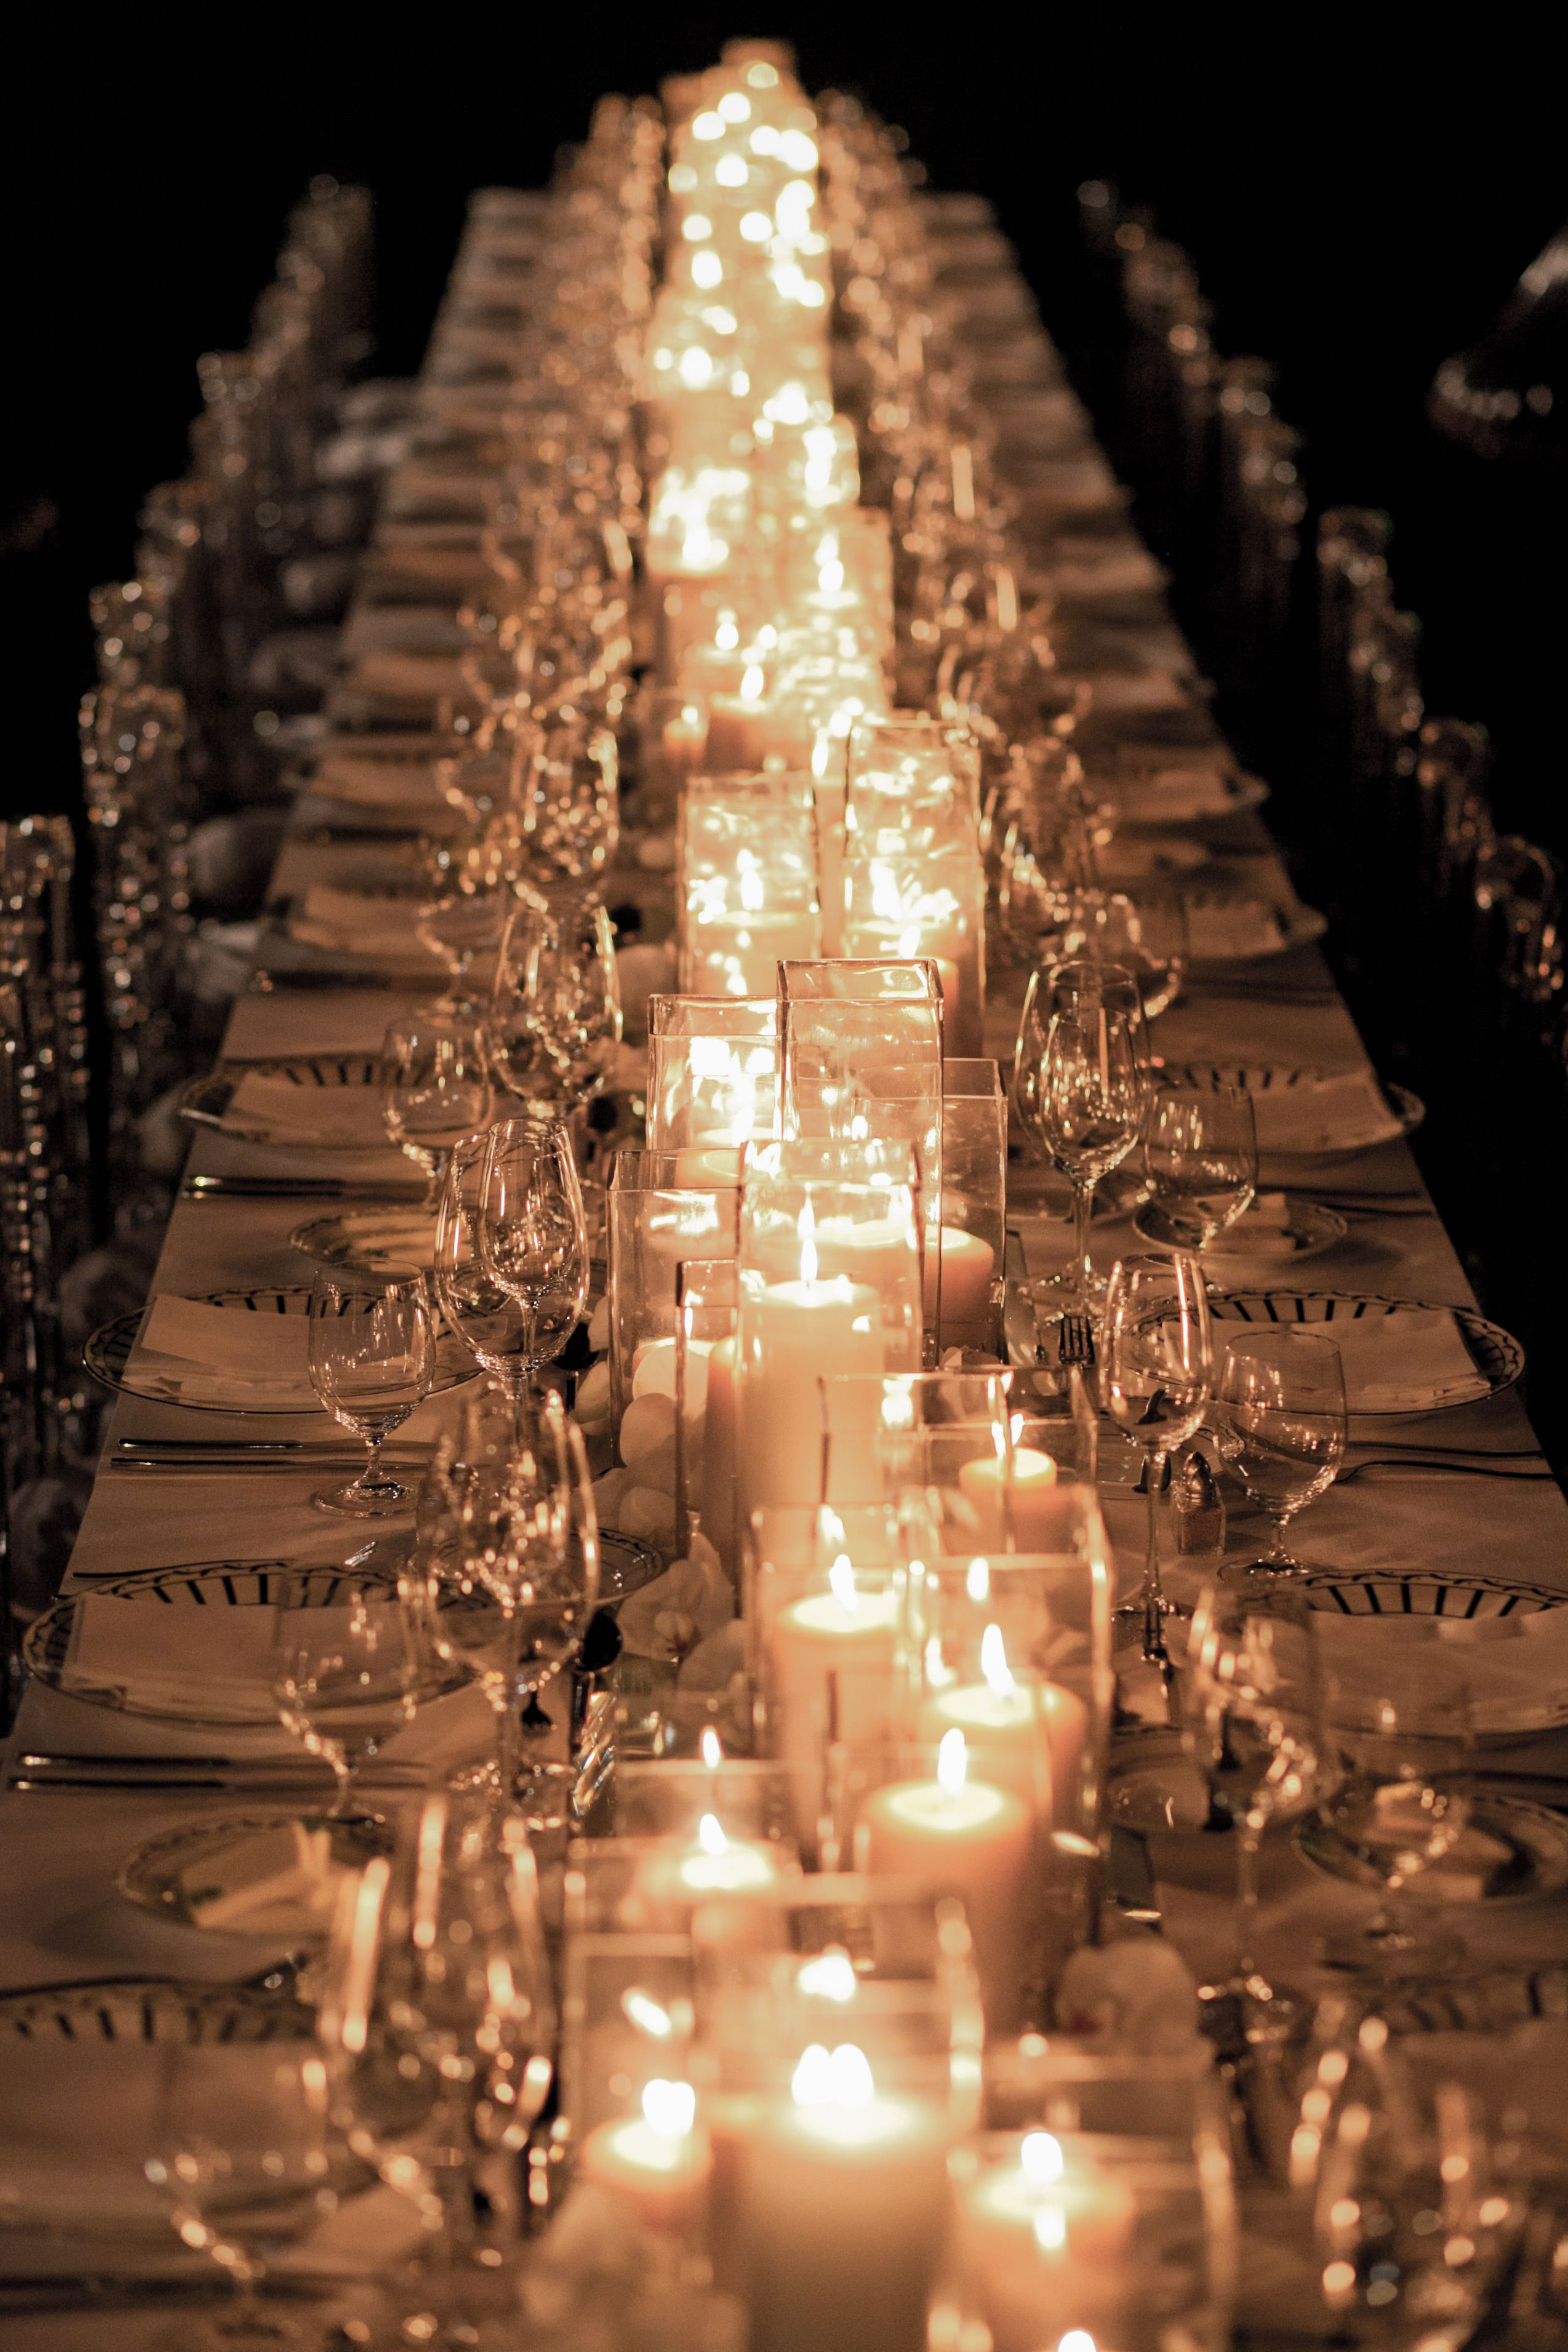 Lookbook white lilac inc flames pinterest sophisticated some of the tables will be pillar candles in vases at varied heights and votives creating a candle runner down the center of the tablei love candle reviewsmspy